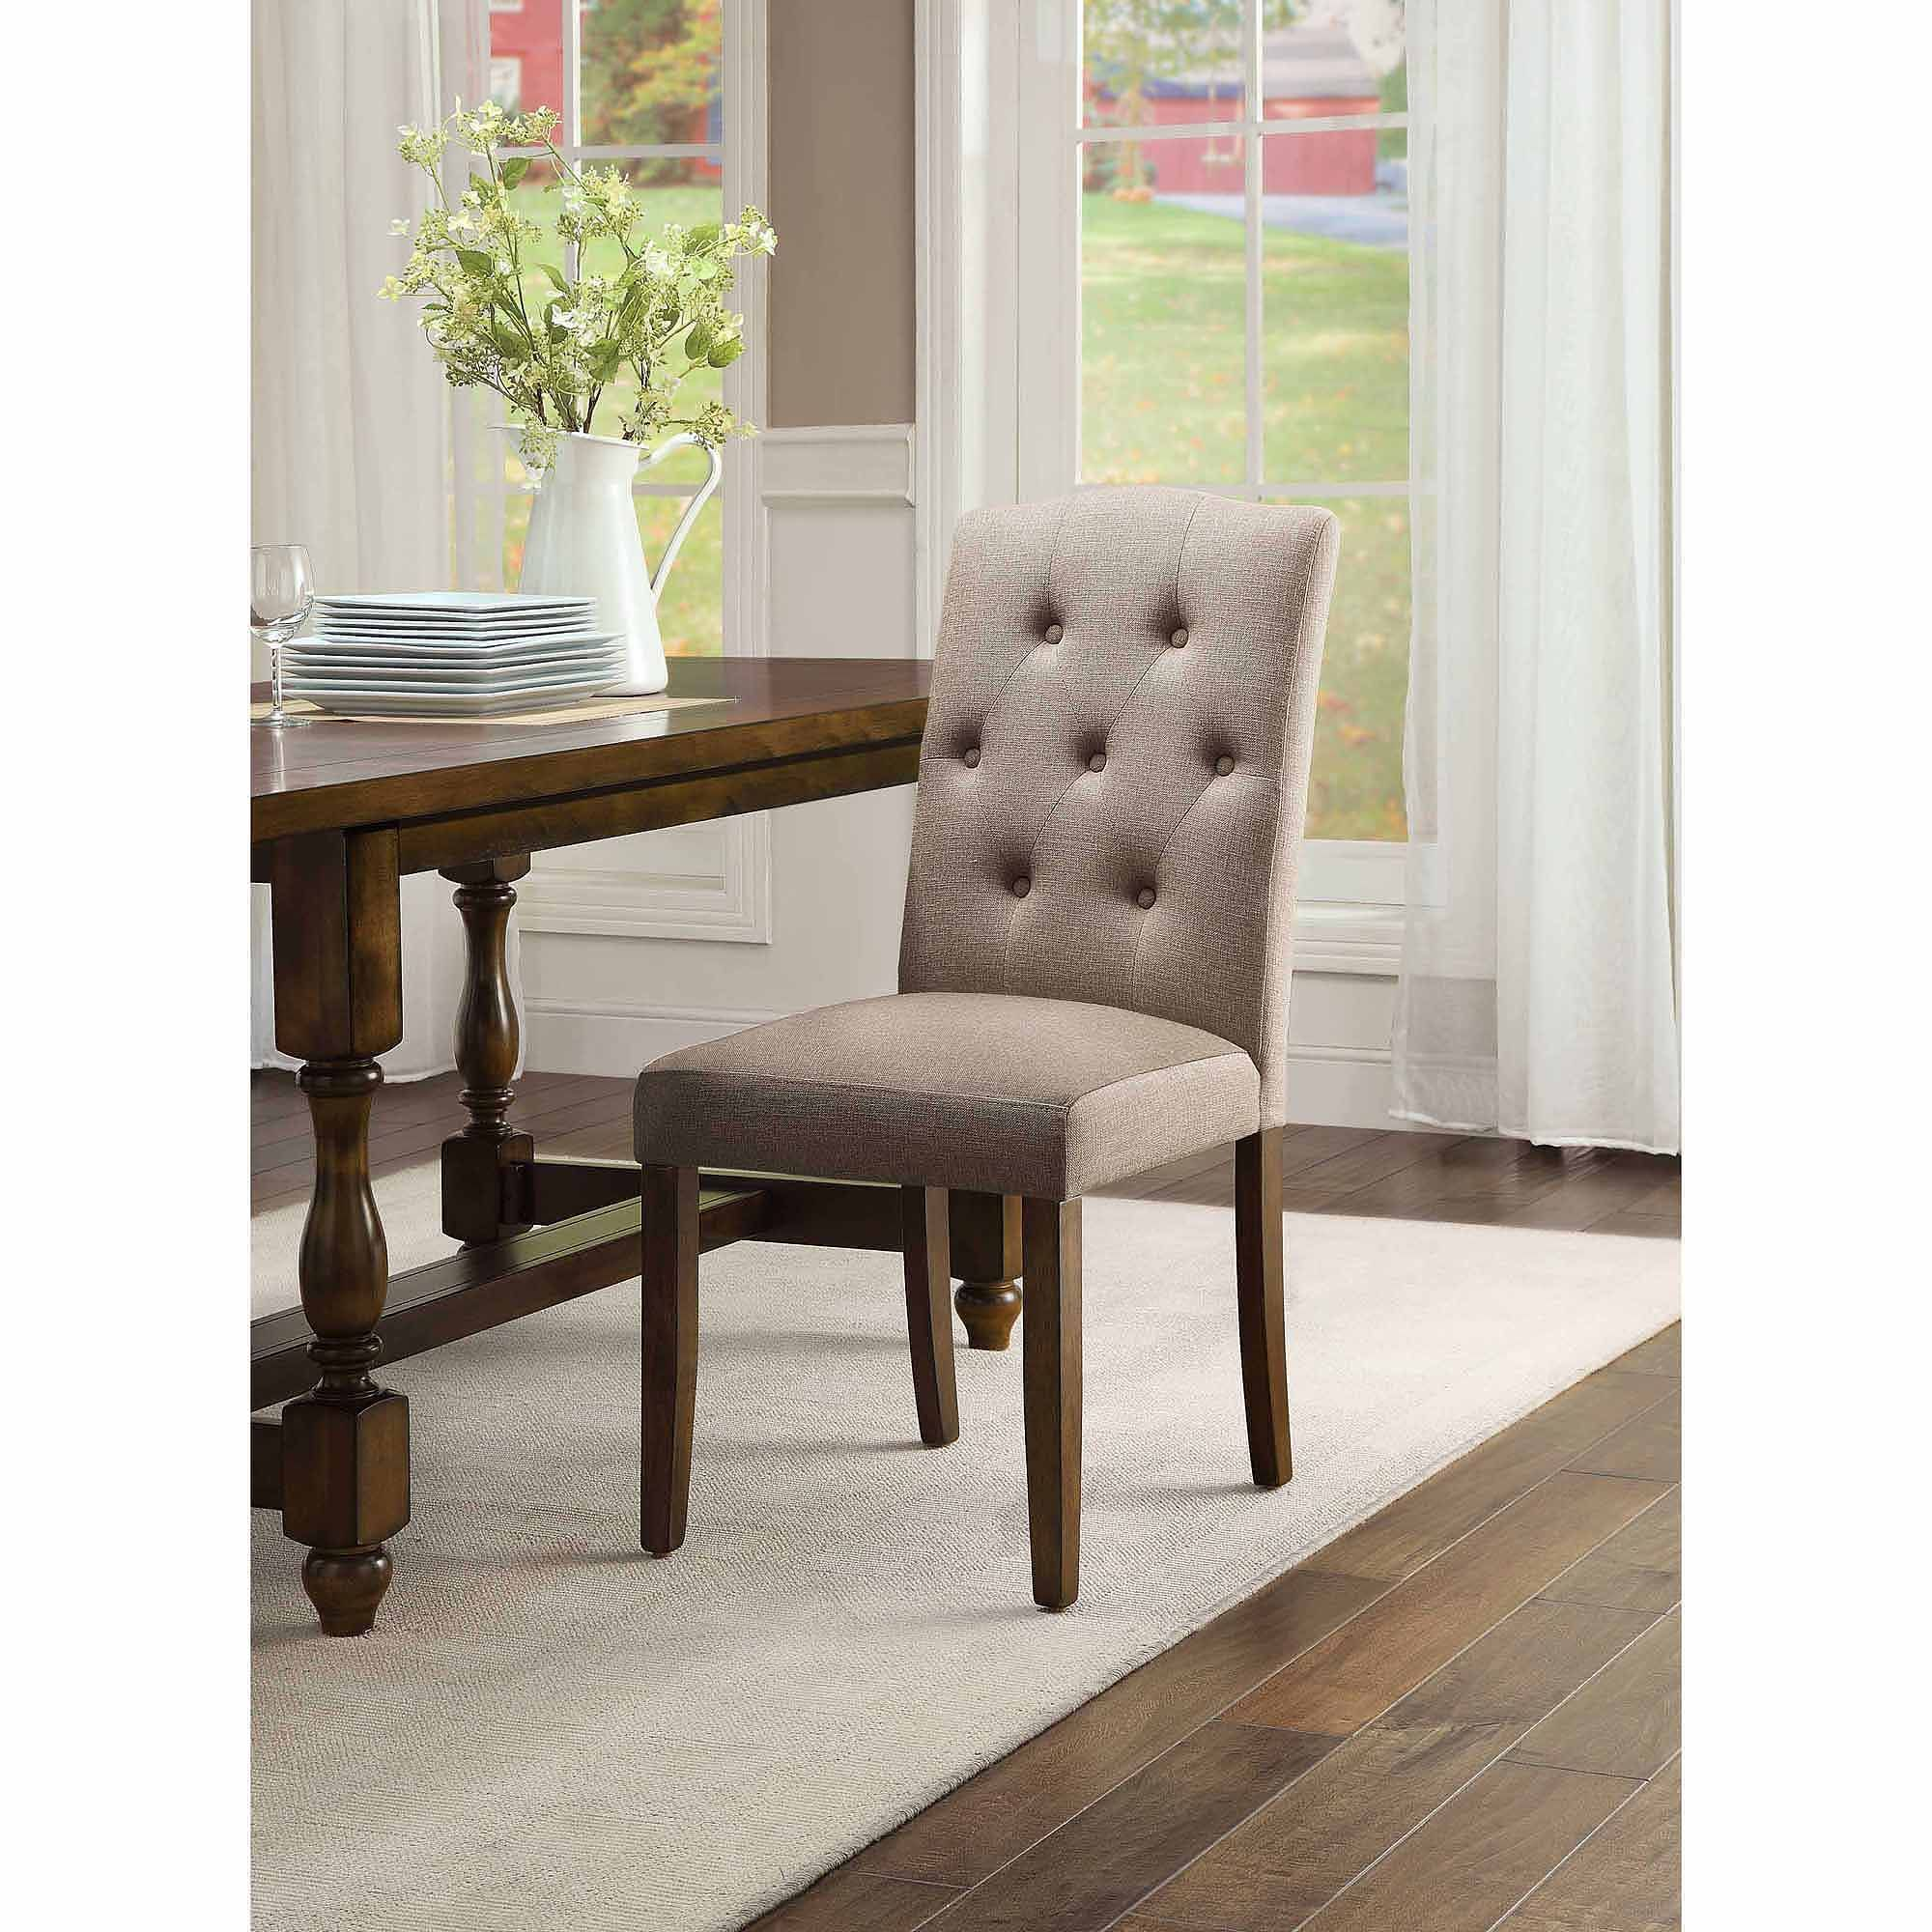 Better Homes And Gardens Providence Upholstered Chair Beige